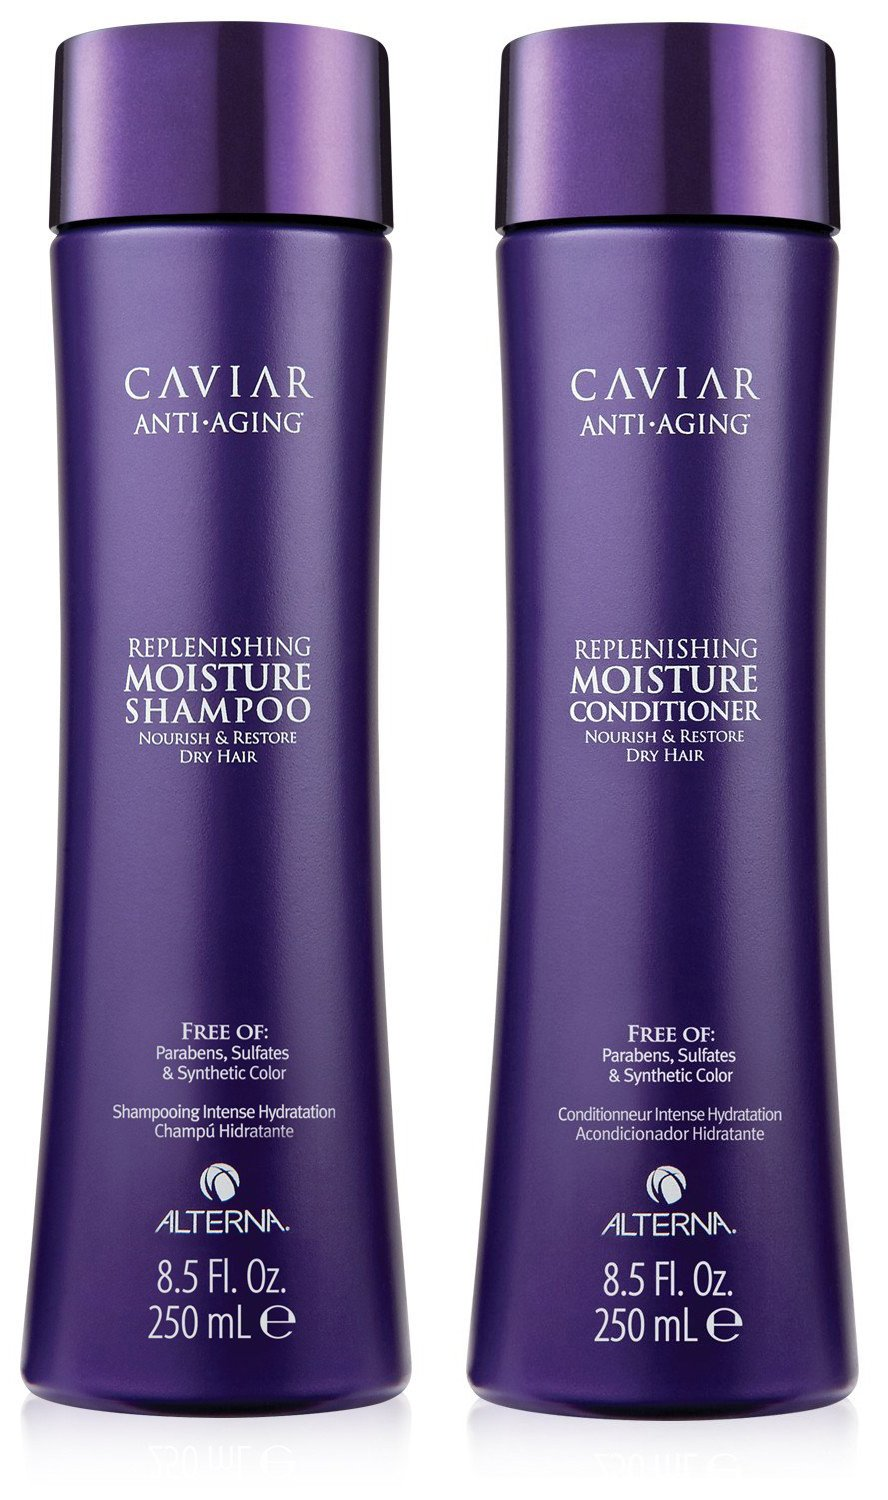 alterna caviar shampoo & conditioner 60515-60615